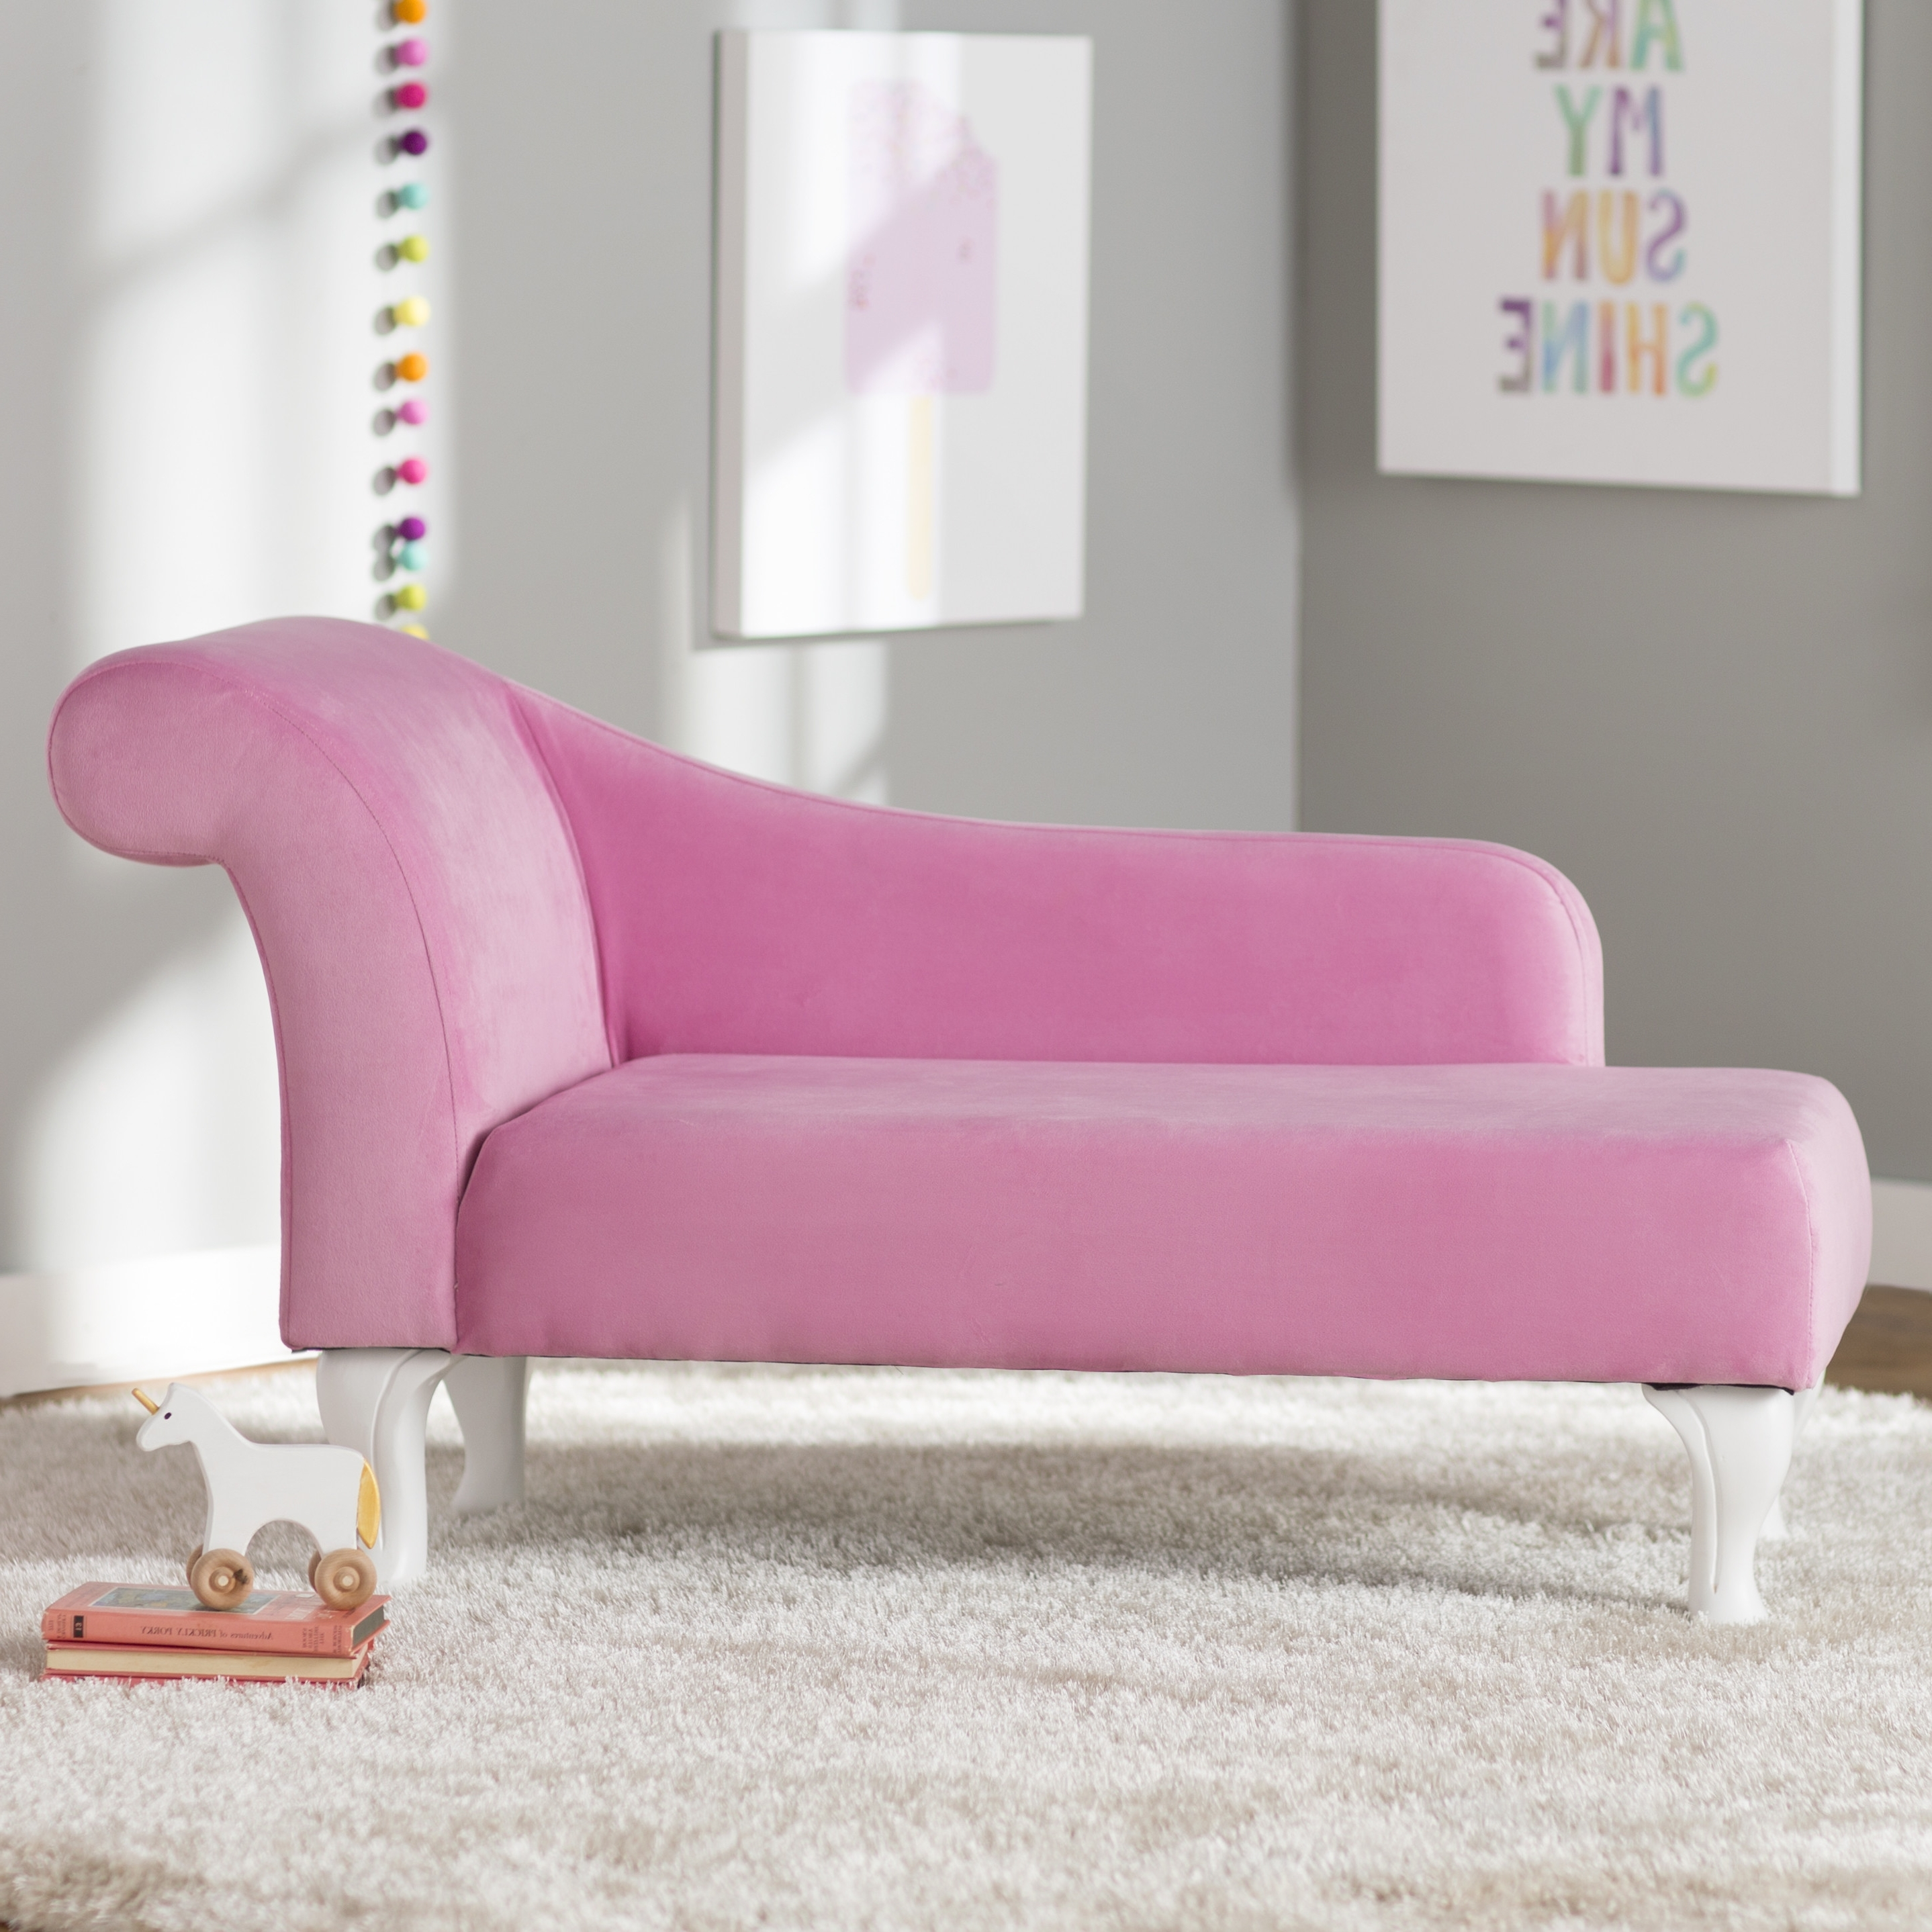 48 Kids Chaise Lounge, Kids Seating Wayfair – Warehousemold For Widely Used Children's Chaise Lounges (Gallery 8 of 15)